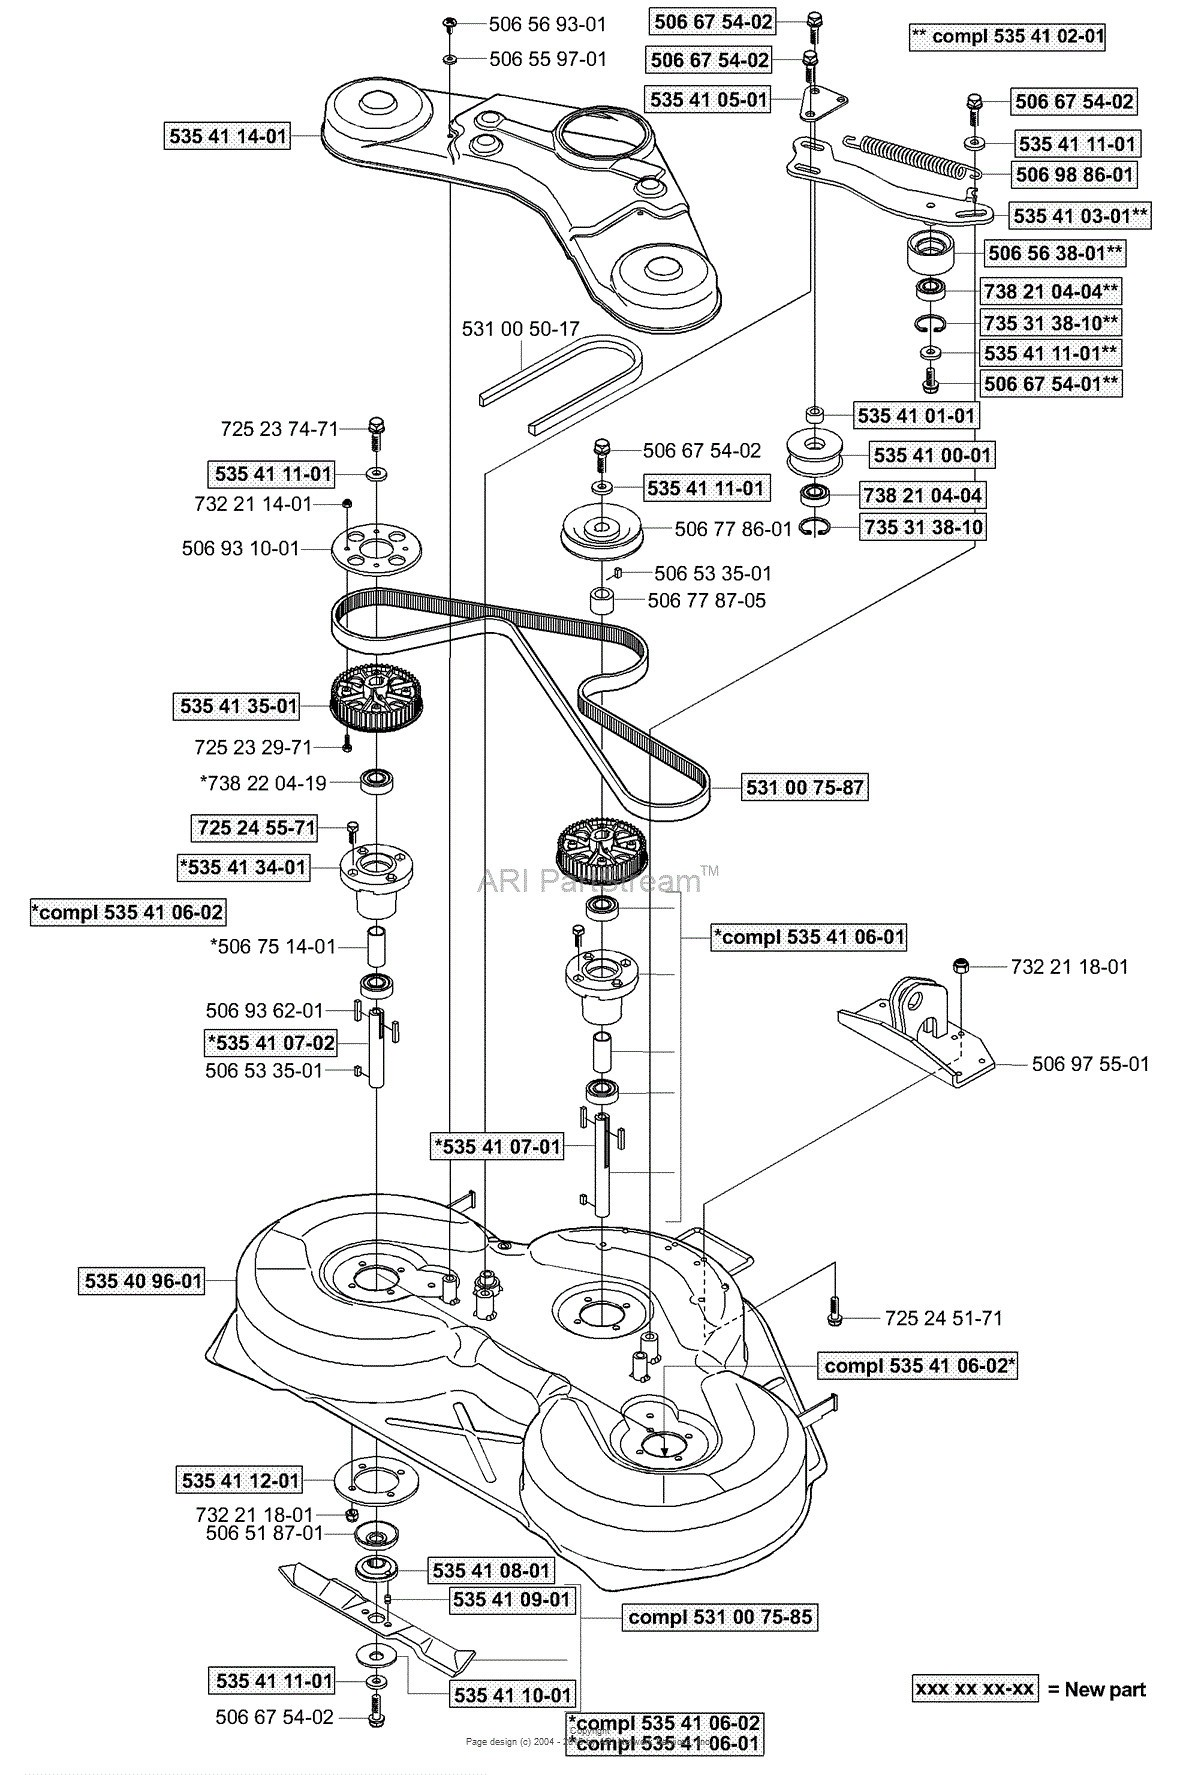 electrolux parts diagram 2002 ford mustang headlight wiring 2100 my